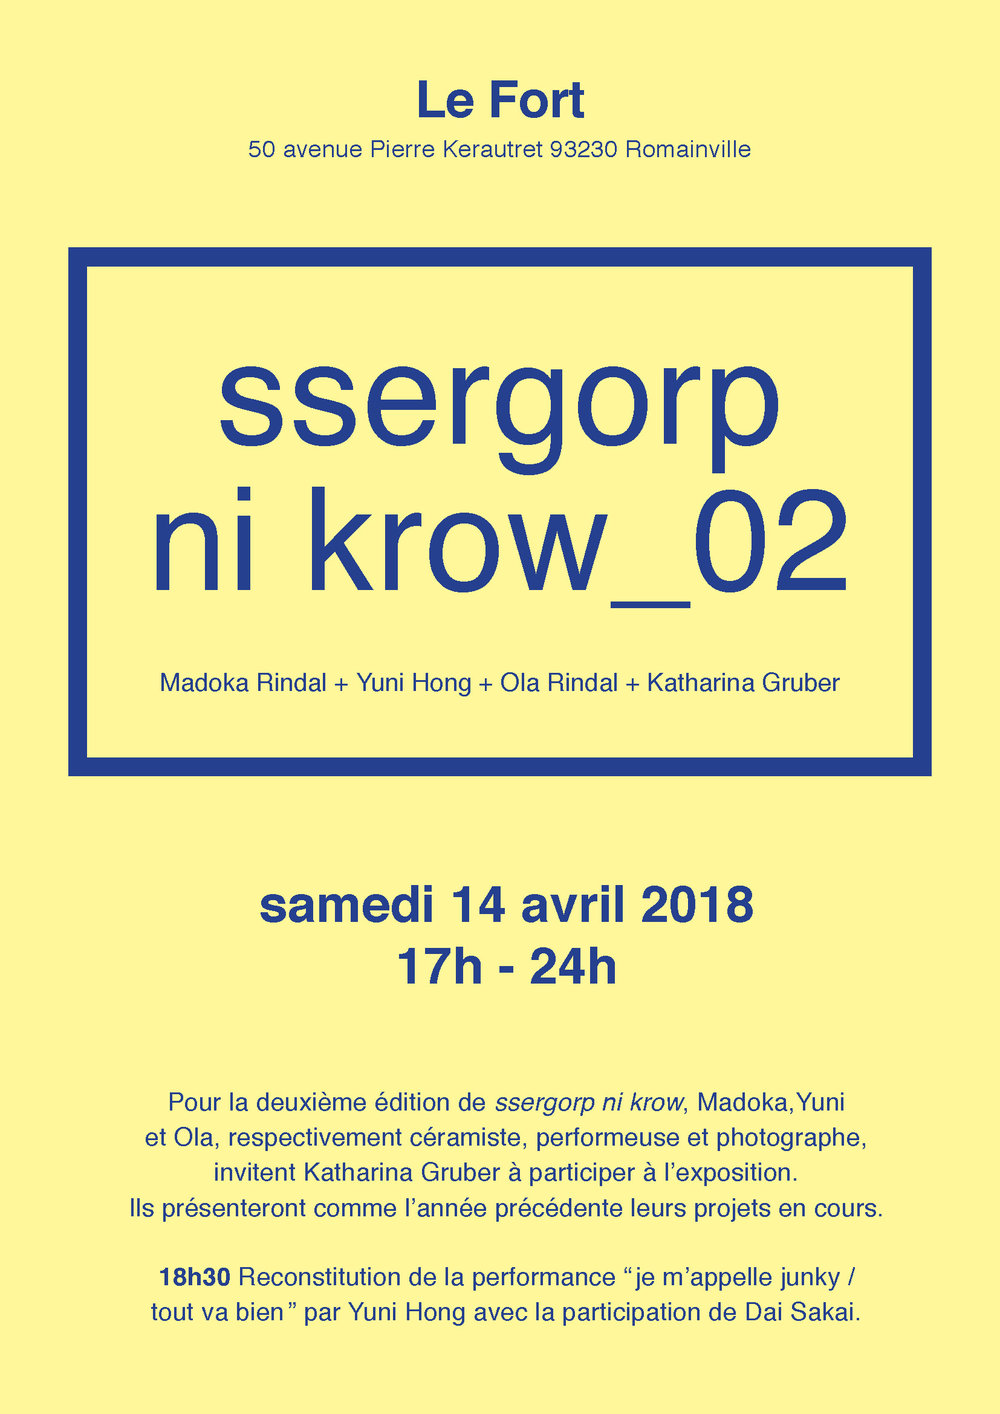 For the second édition of 'ssergorp ni krow' Madoka Rindal (ceramist), Ola Rindal (photographer) and Yuni Hong (performance artist) presented each other's work during an open vernissage. Katharina Gruber was invited to participate with her installation work.